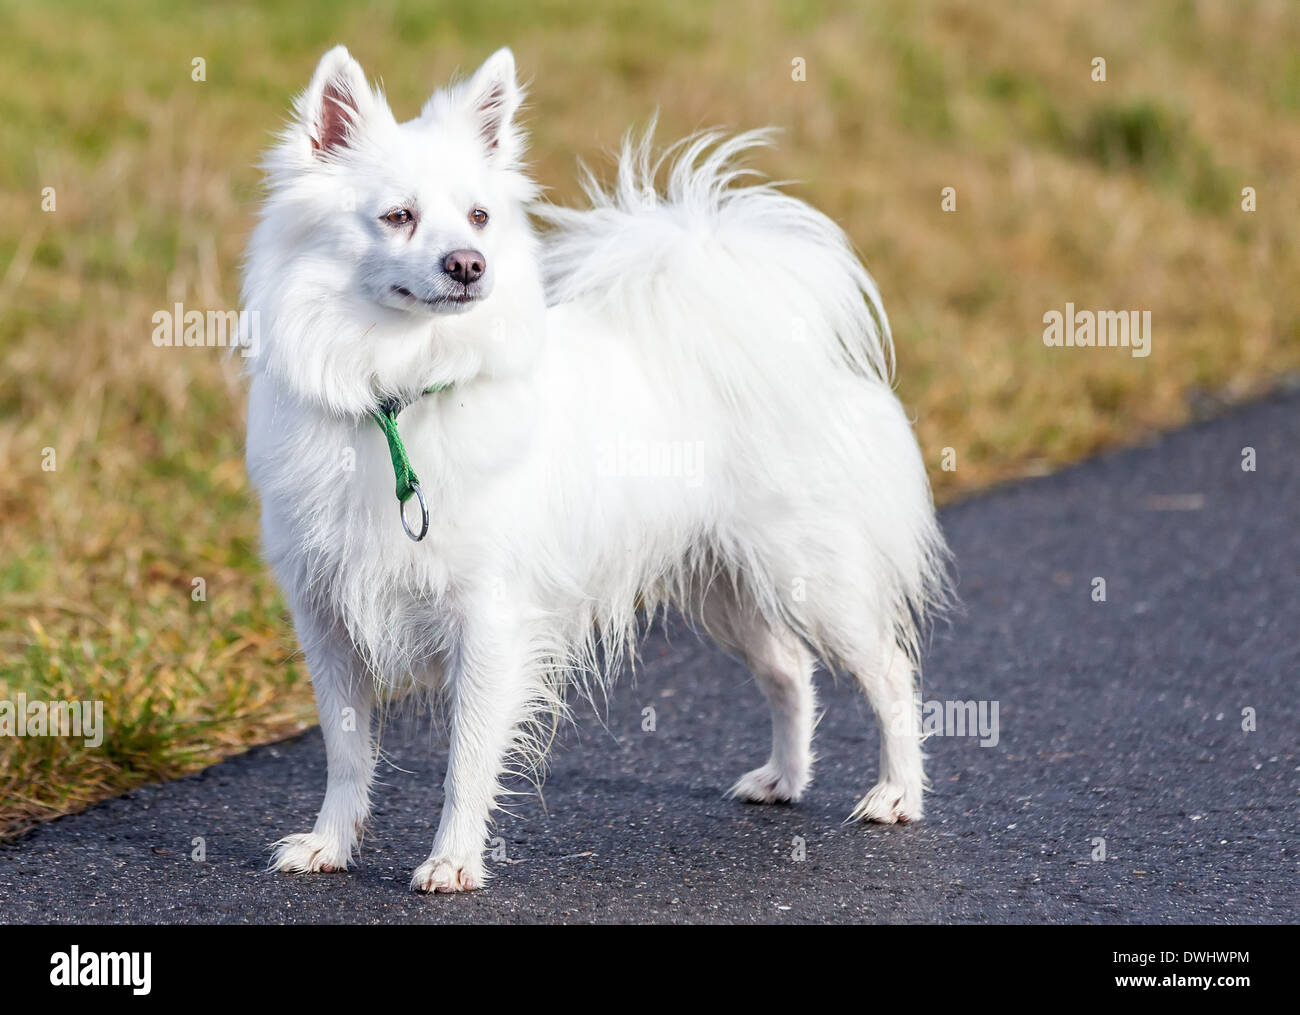 Spitz Dog High Resolution Stock Photography And Images Alamy